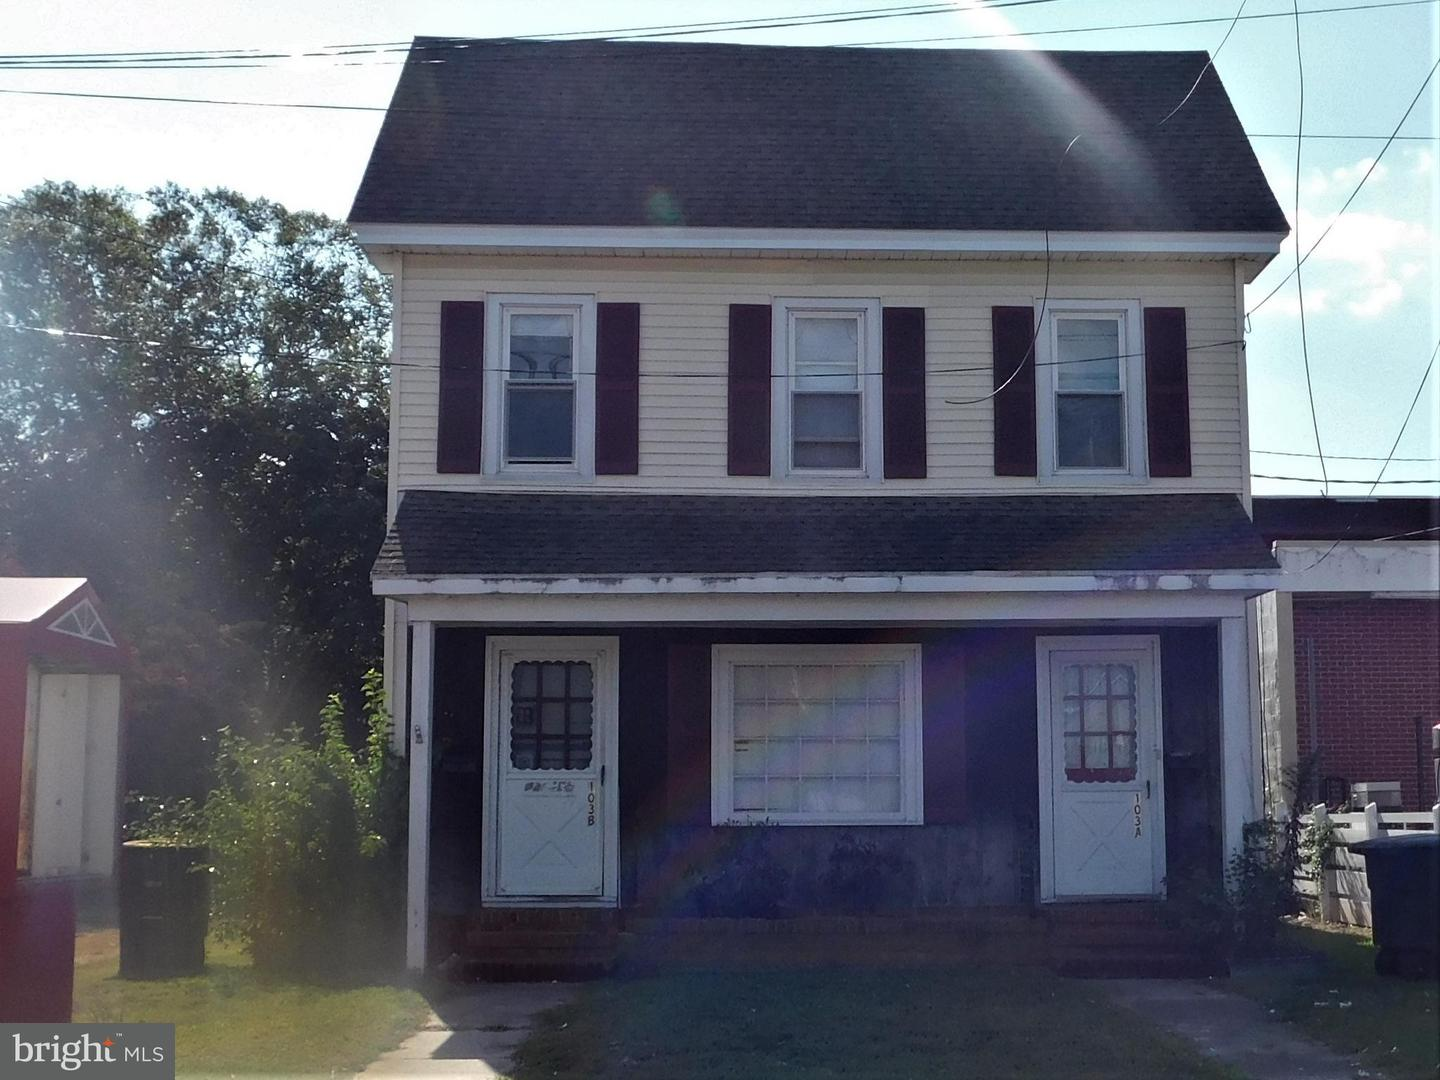 Commercial for Sale at 103 Main St Federalsburg, Maryland 21632 United States